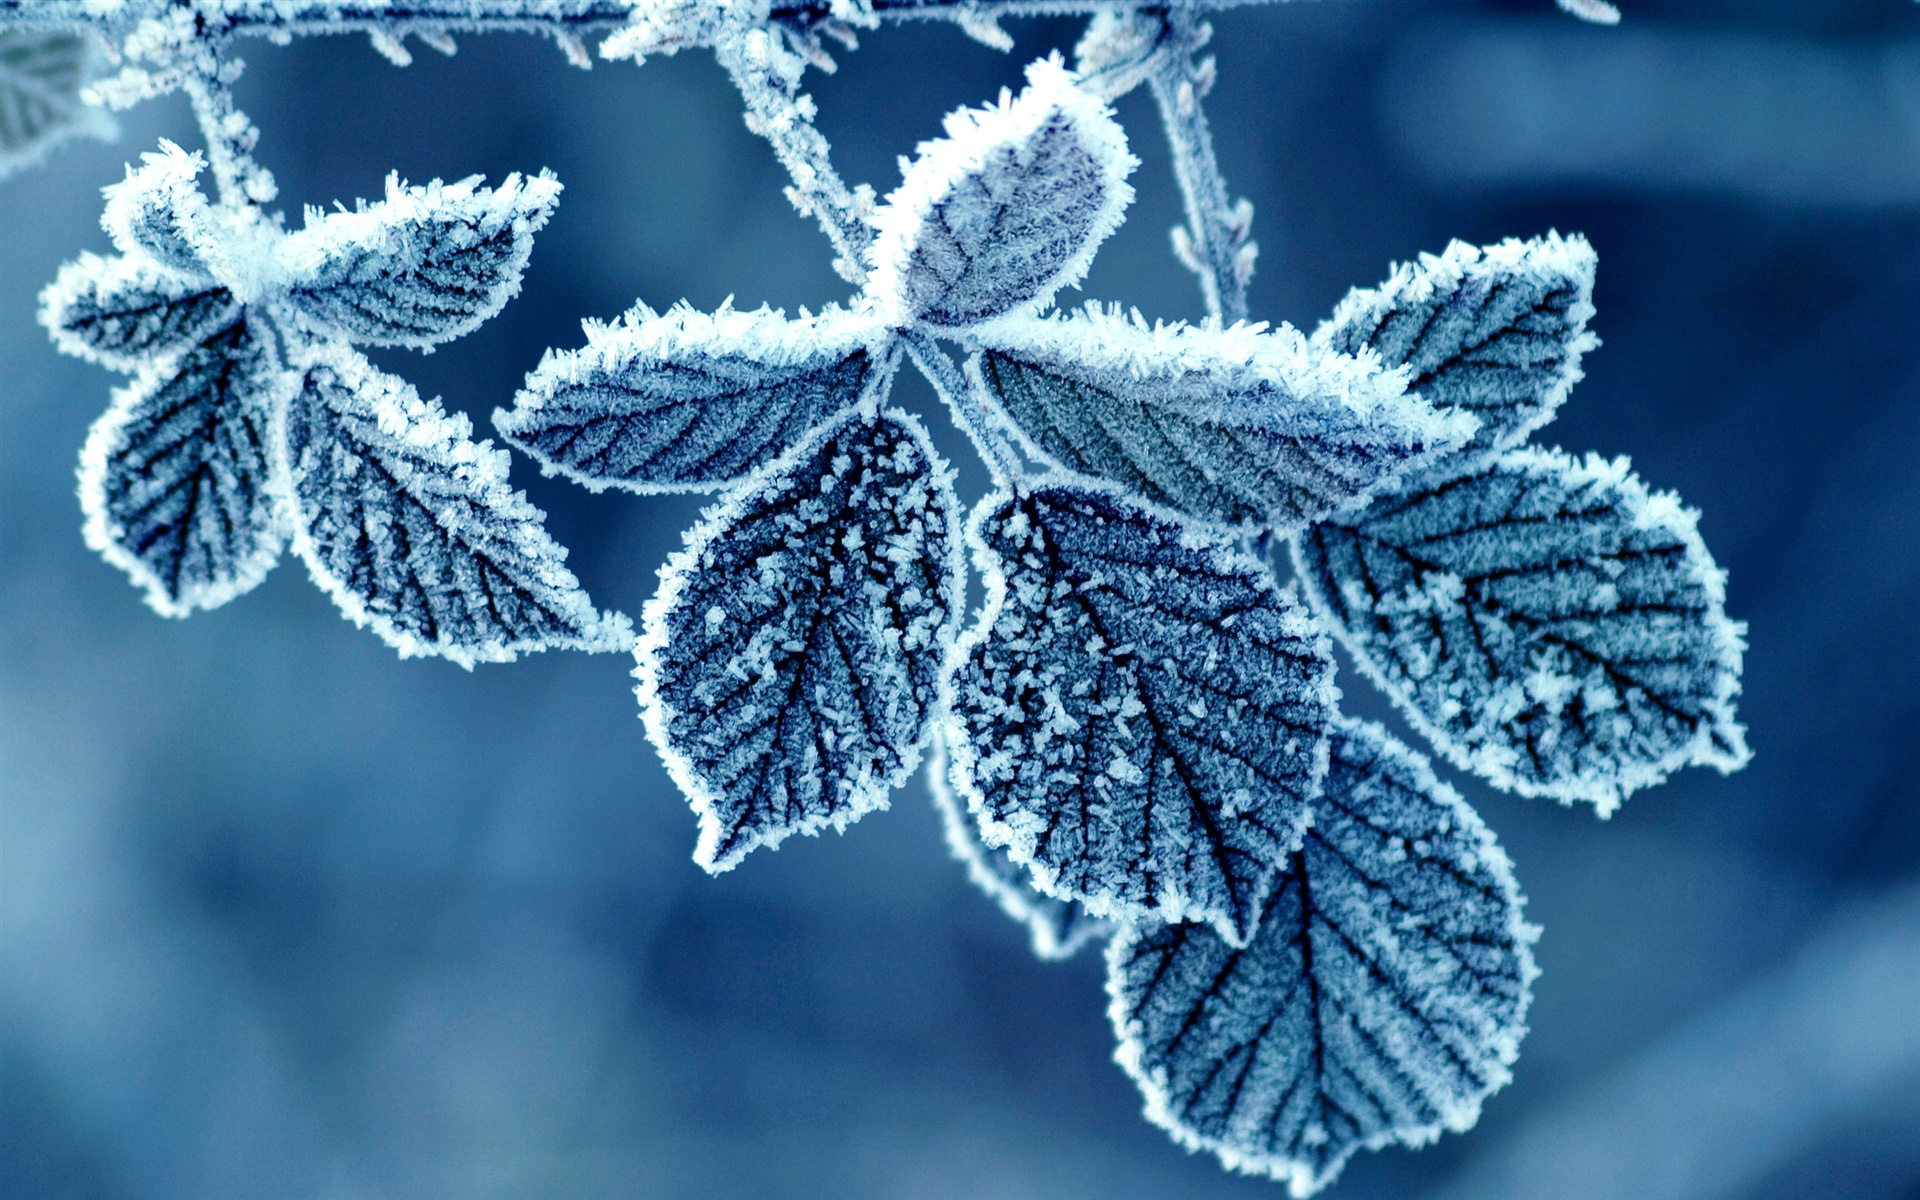 frost wallpaper nature